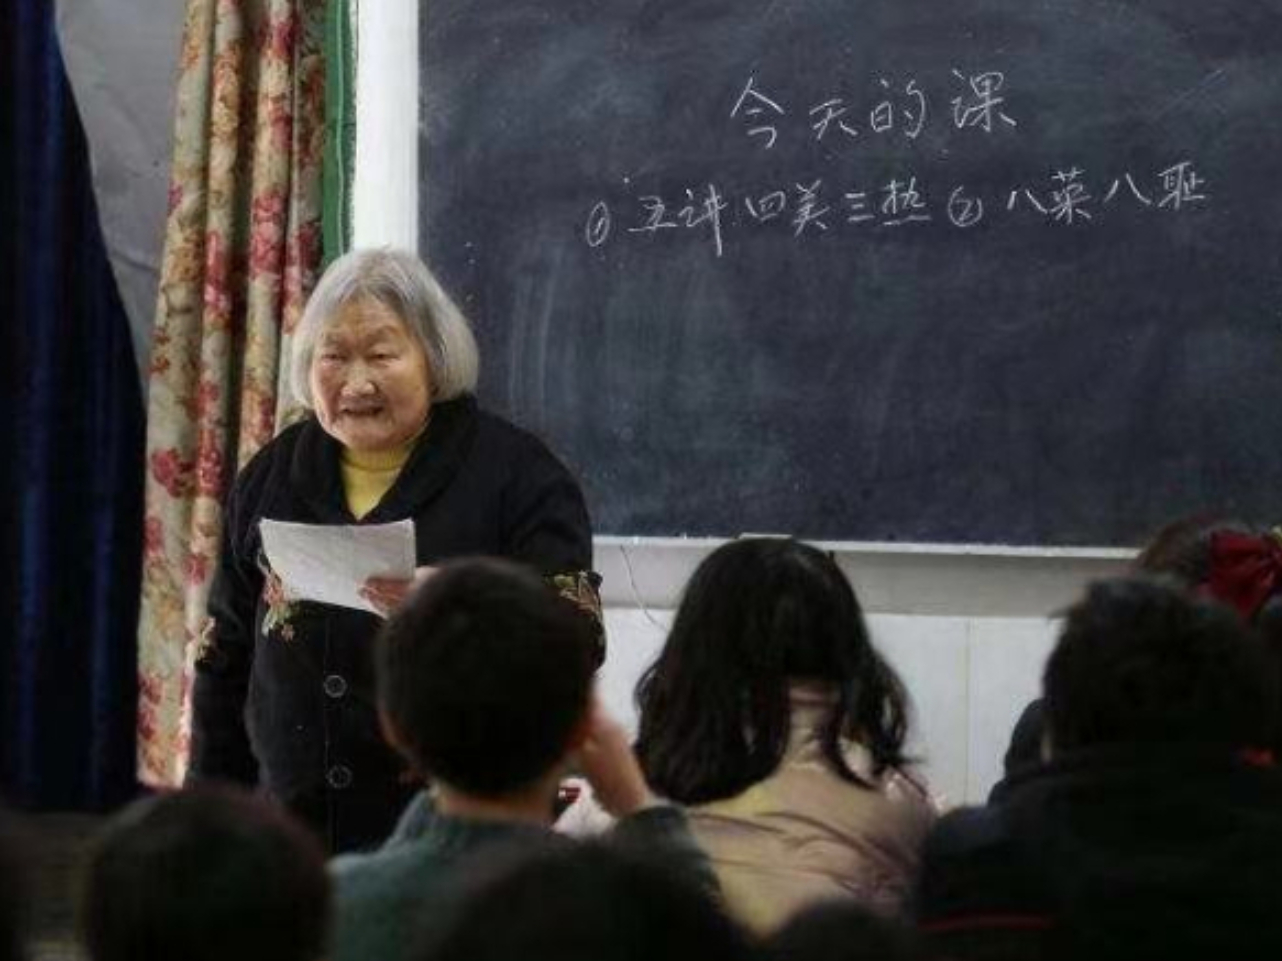 Tutor teaches children left behind in Sichuan by migrant working parents